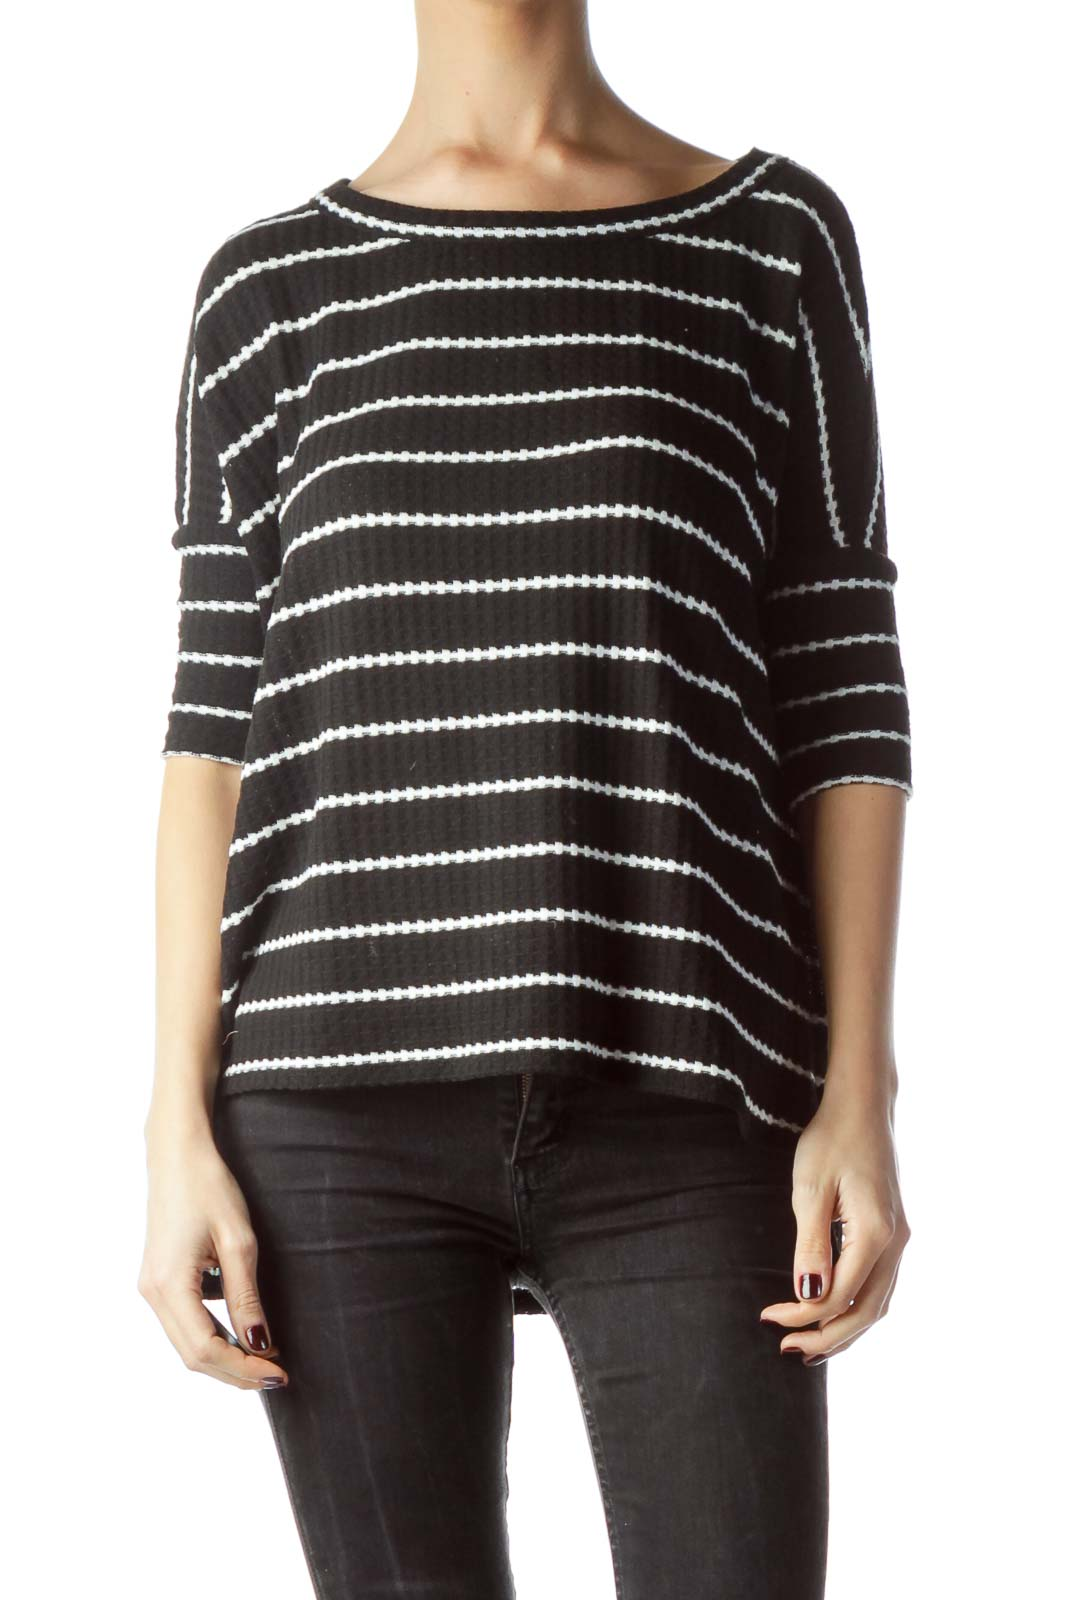 Black White 3/4 Sleeve High-Low Knit Top Front